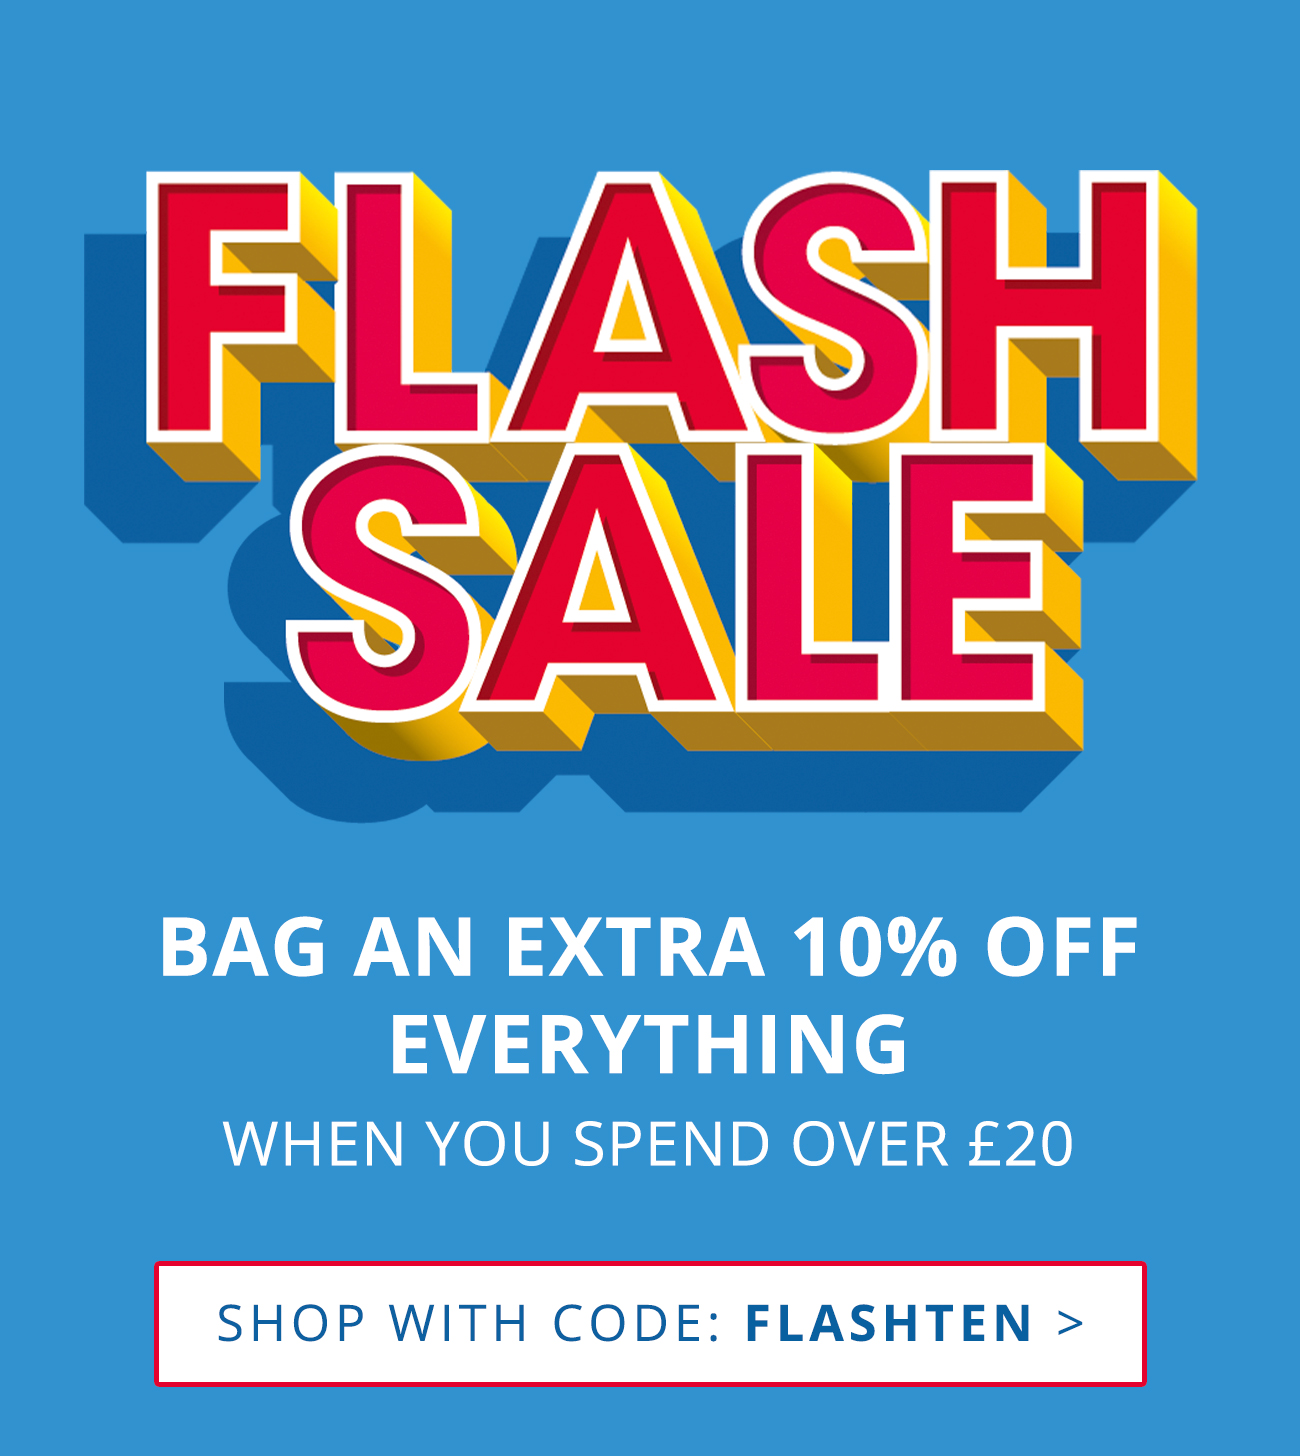 Flash sale! Bag an extra 10% off everything with code: FLASHTEN